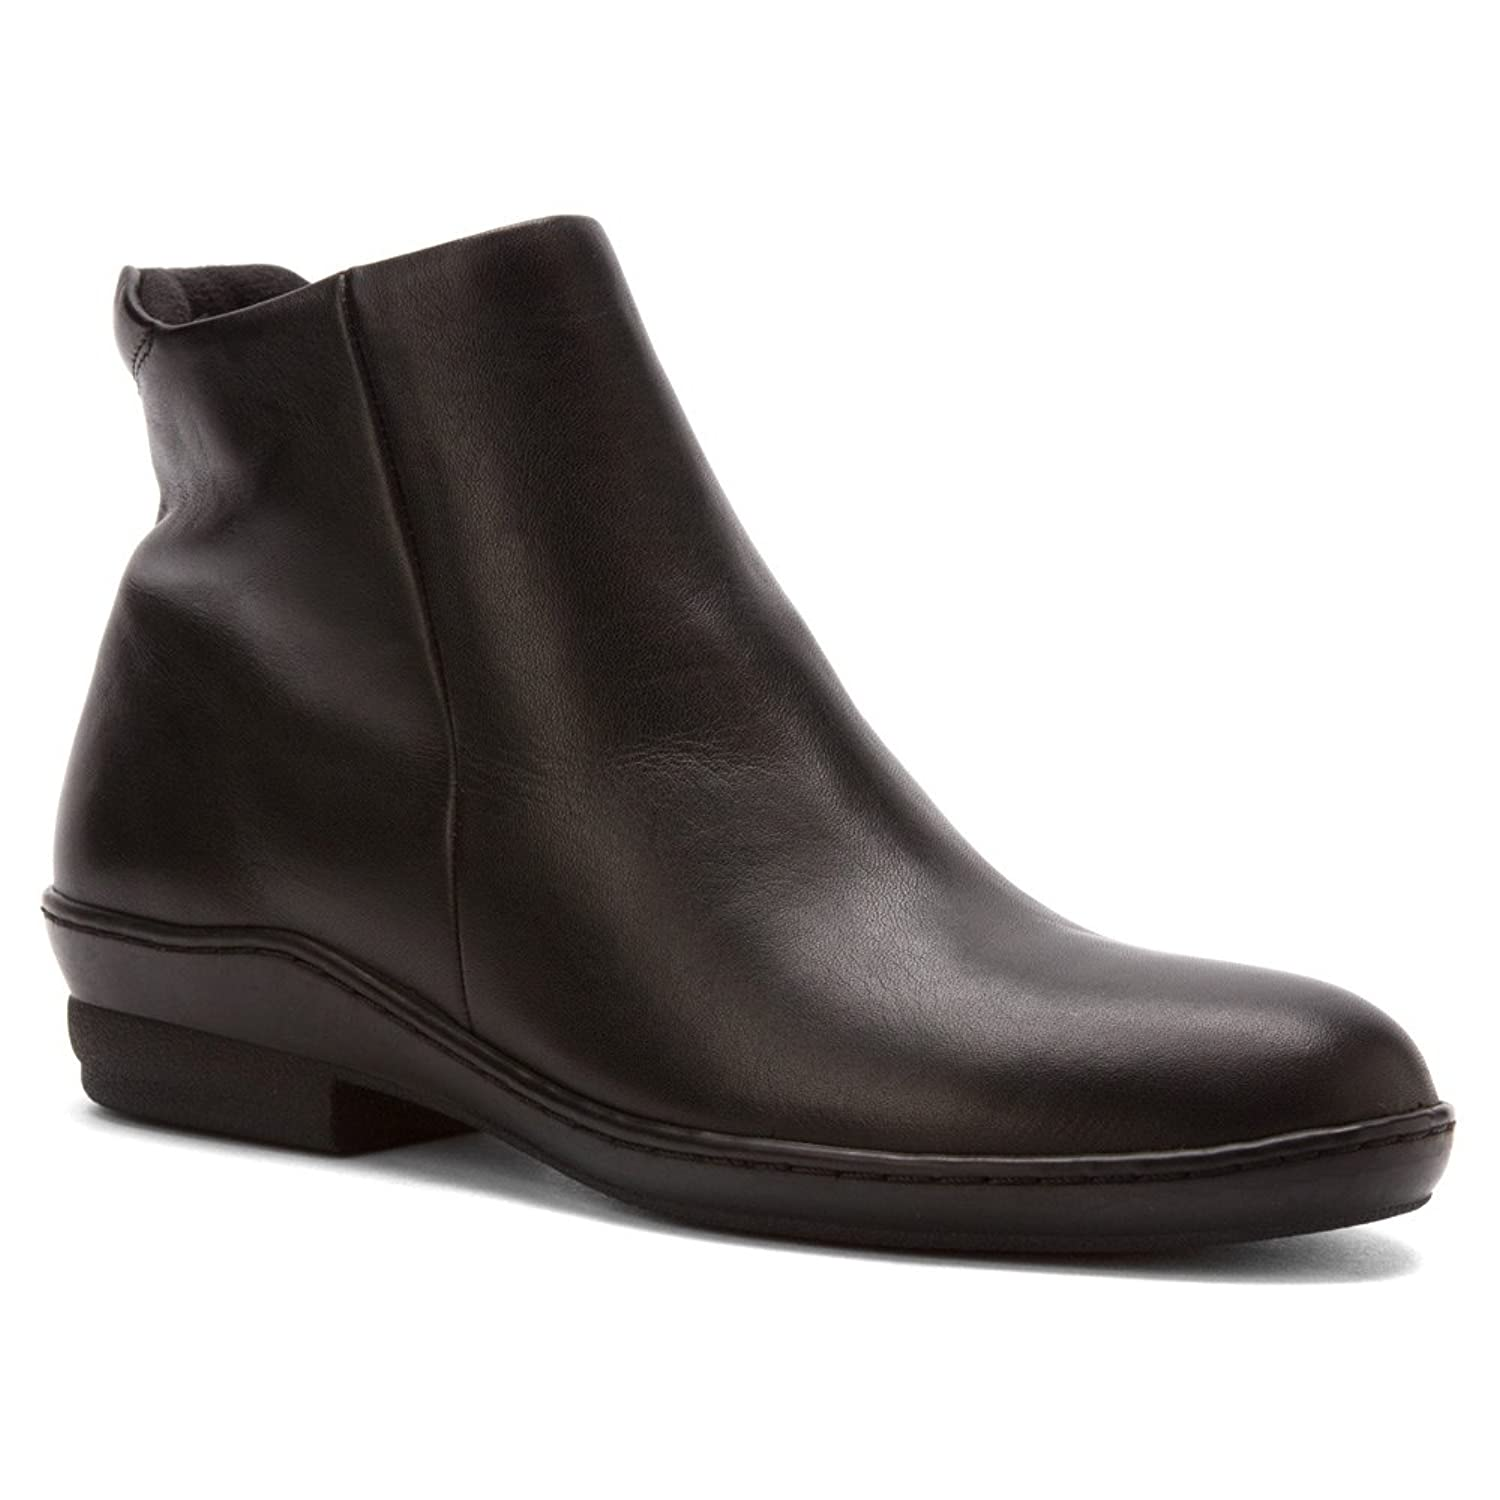 David Tate Misty Fashion Bootie sBItqTW1